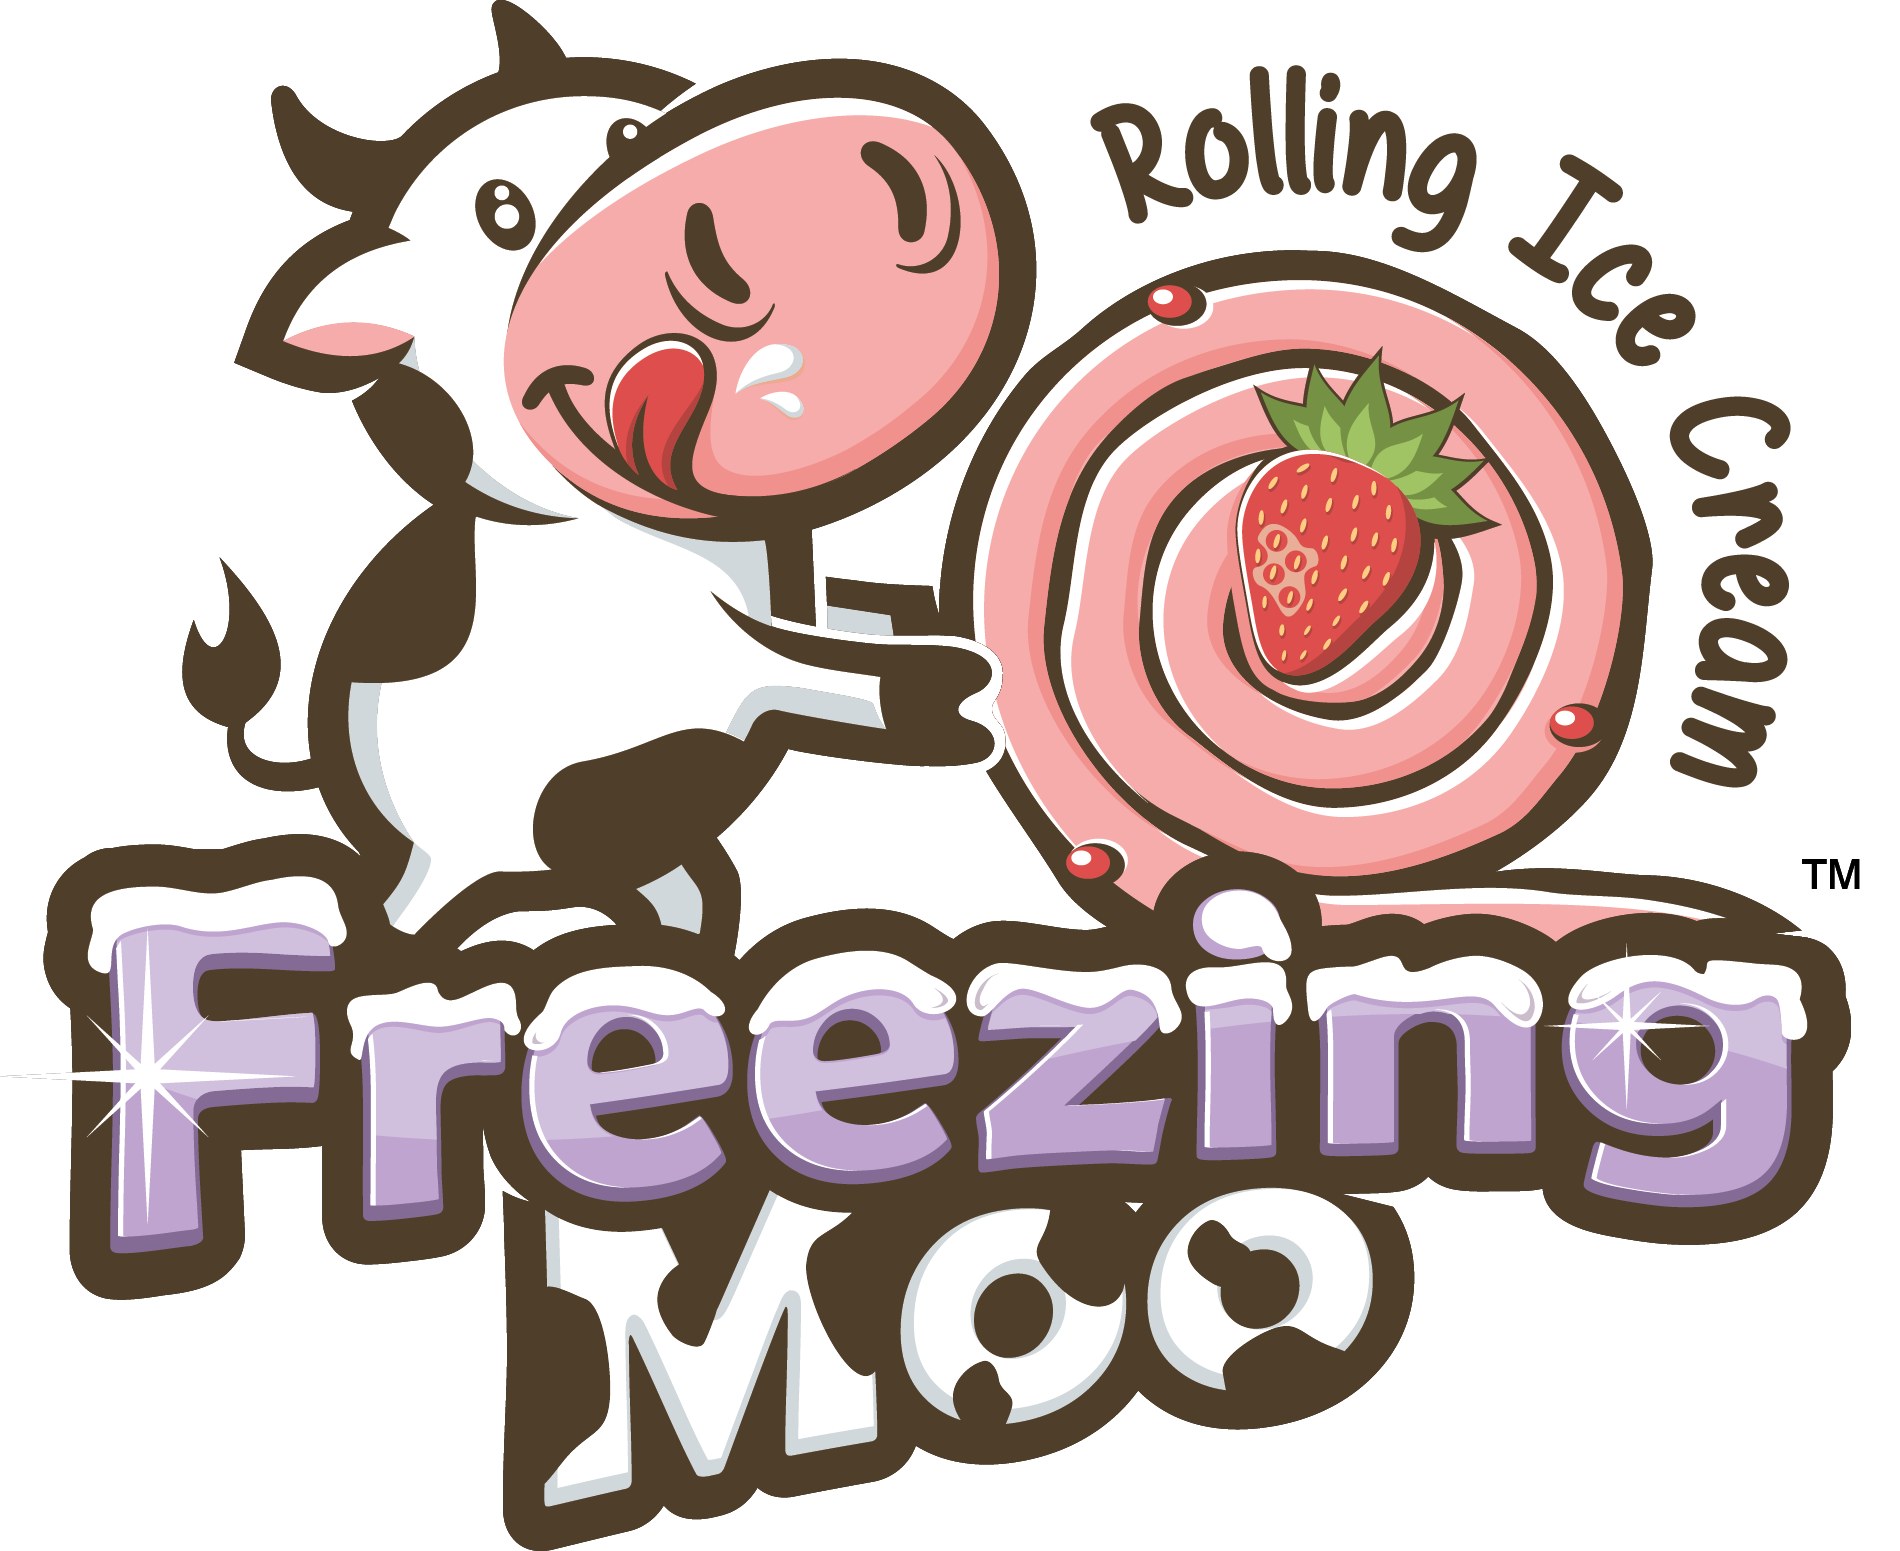 Freezing Moo logo